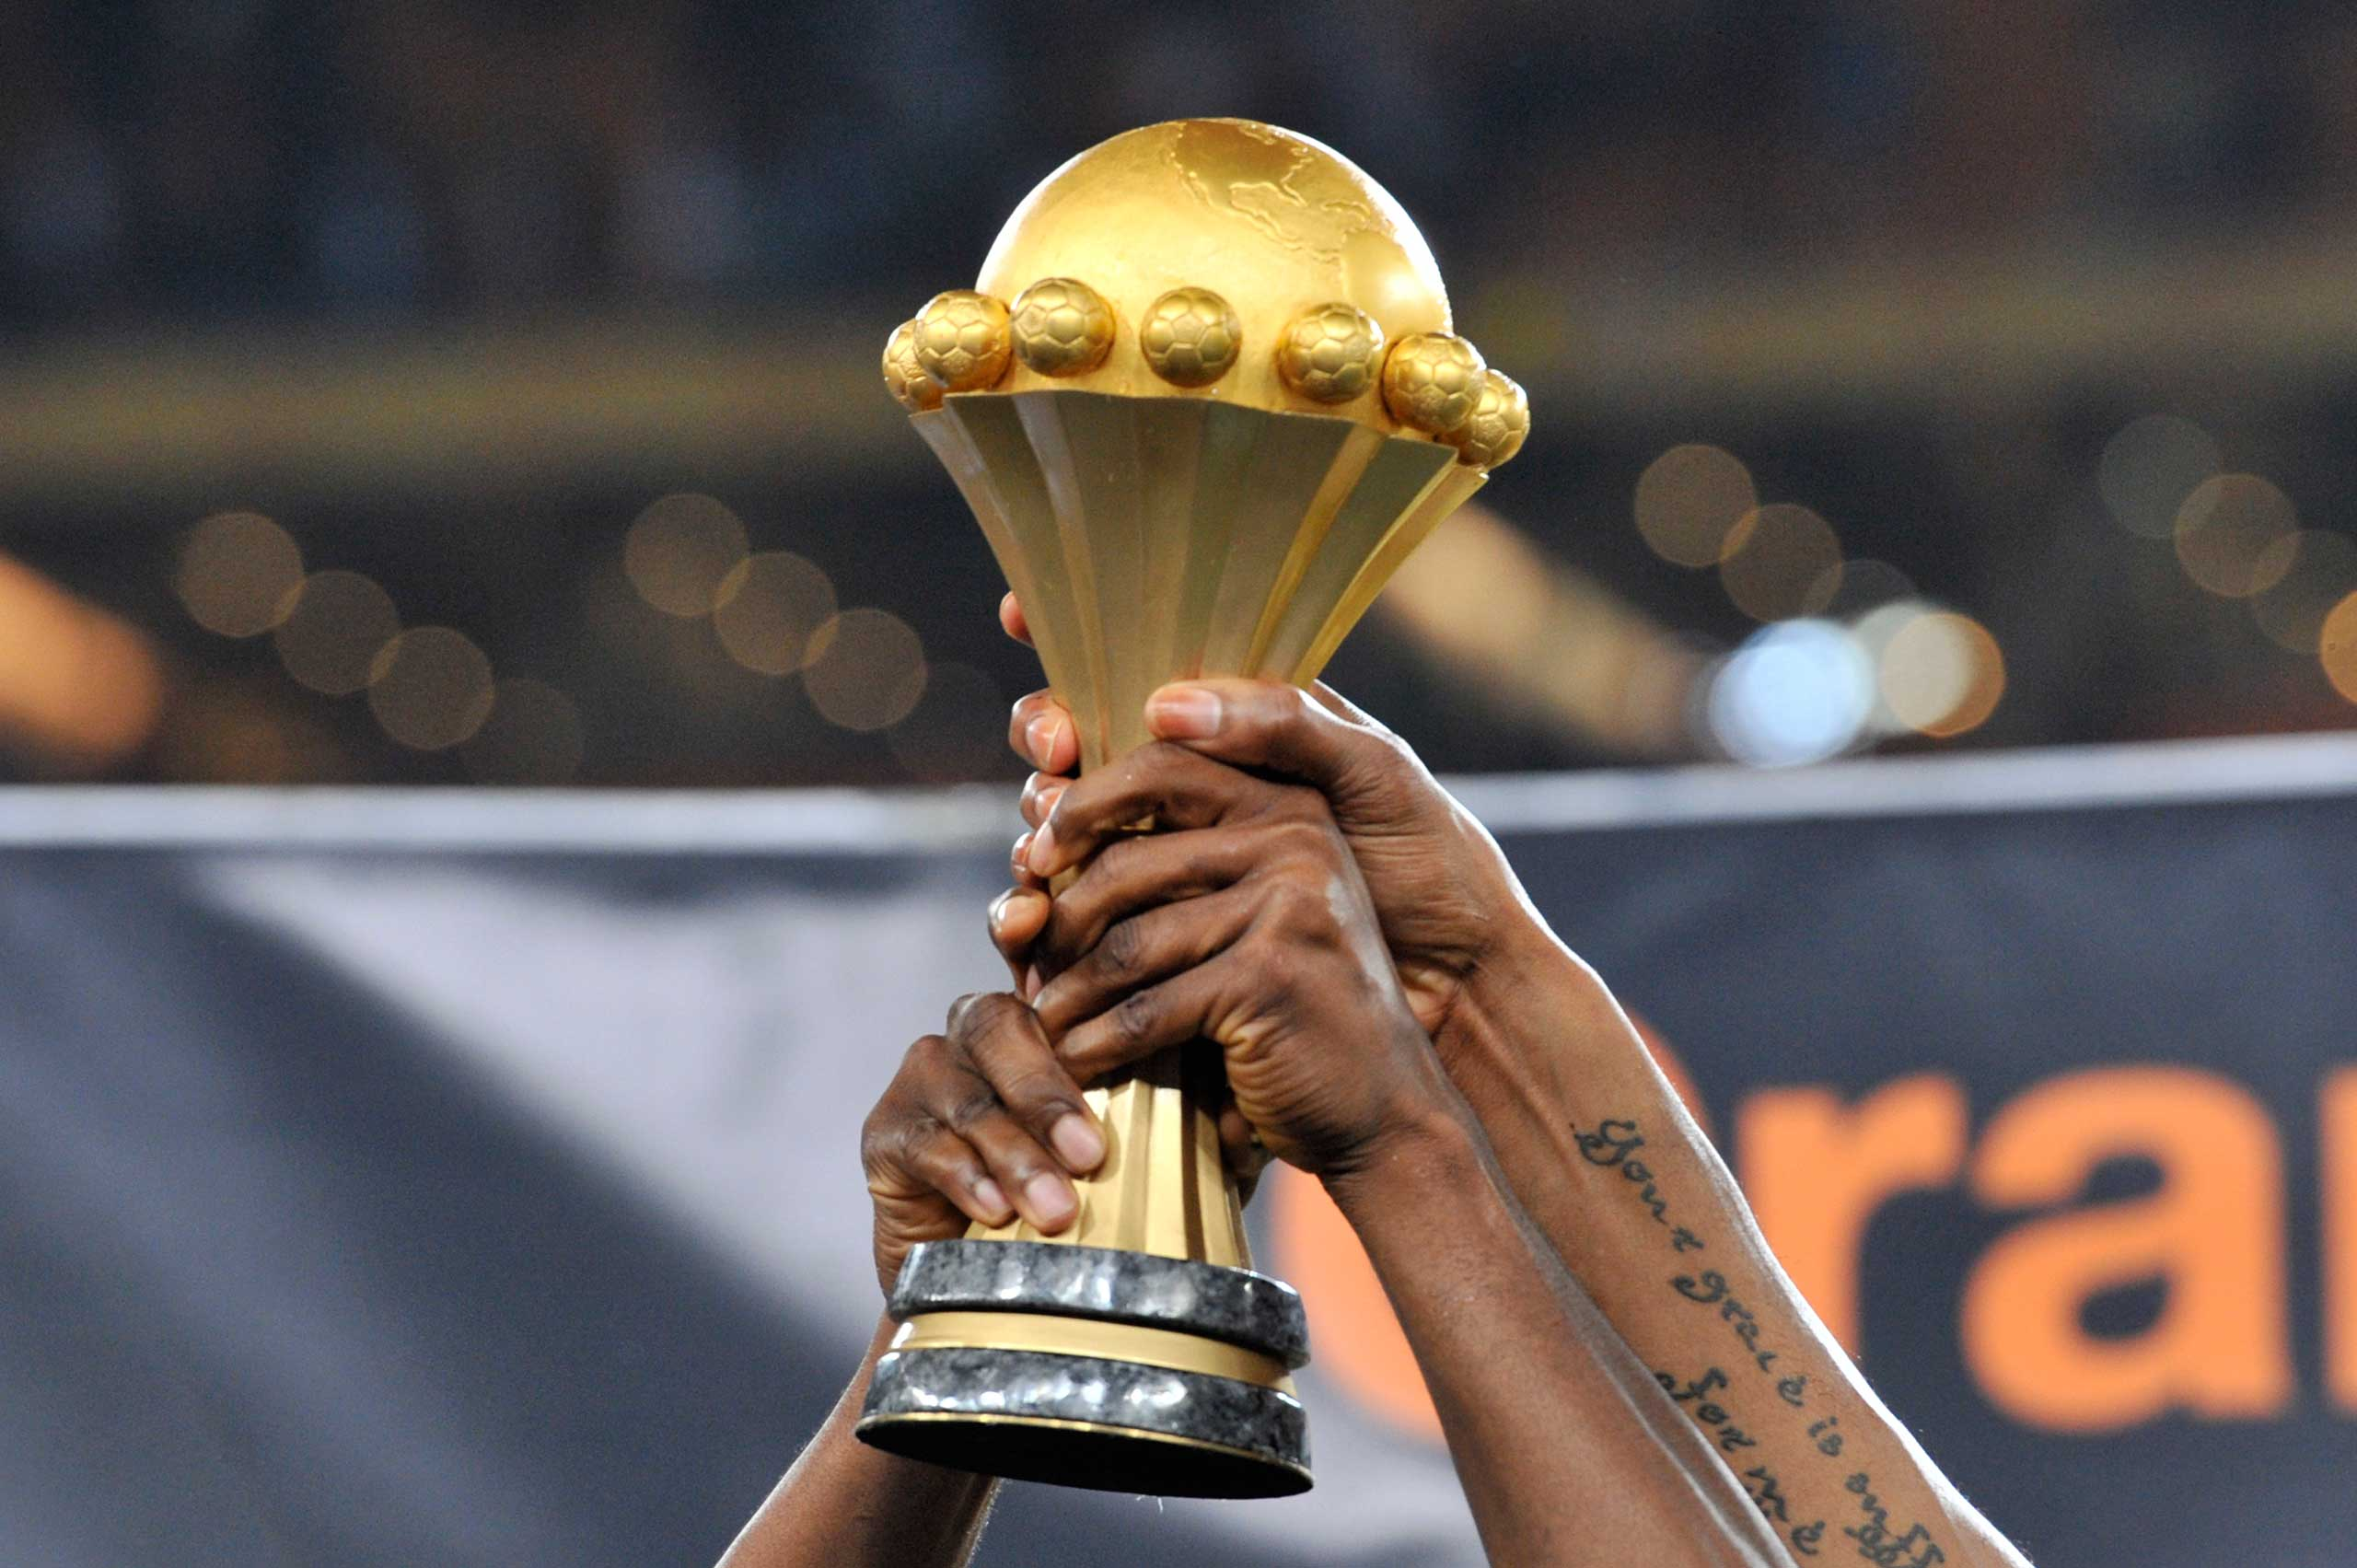 Nigeria's national football team players hold the trophy as they celebrate winning the 2013 African Cup of Nations final against Burkina Faso on Feb. 10, 2013 at Soccer City stadium in Johannesburg.